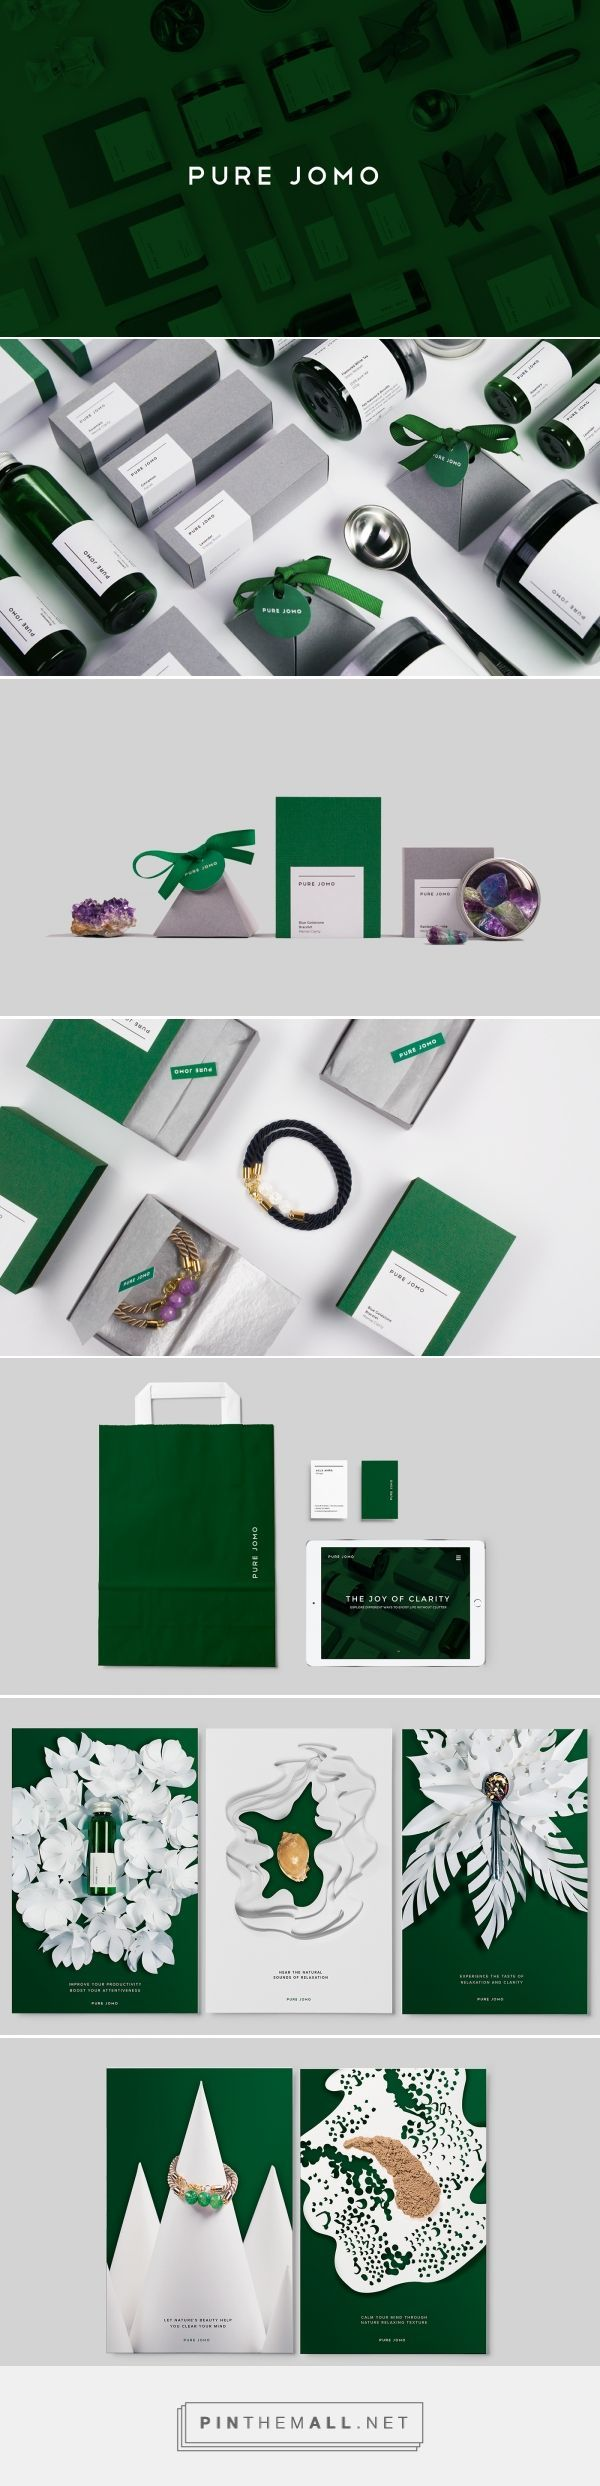 Pure Jomo Stress Relief Product Packaging by Alaa Amra